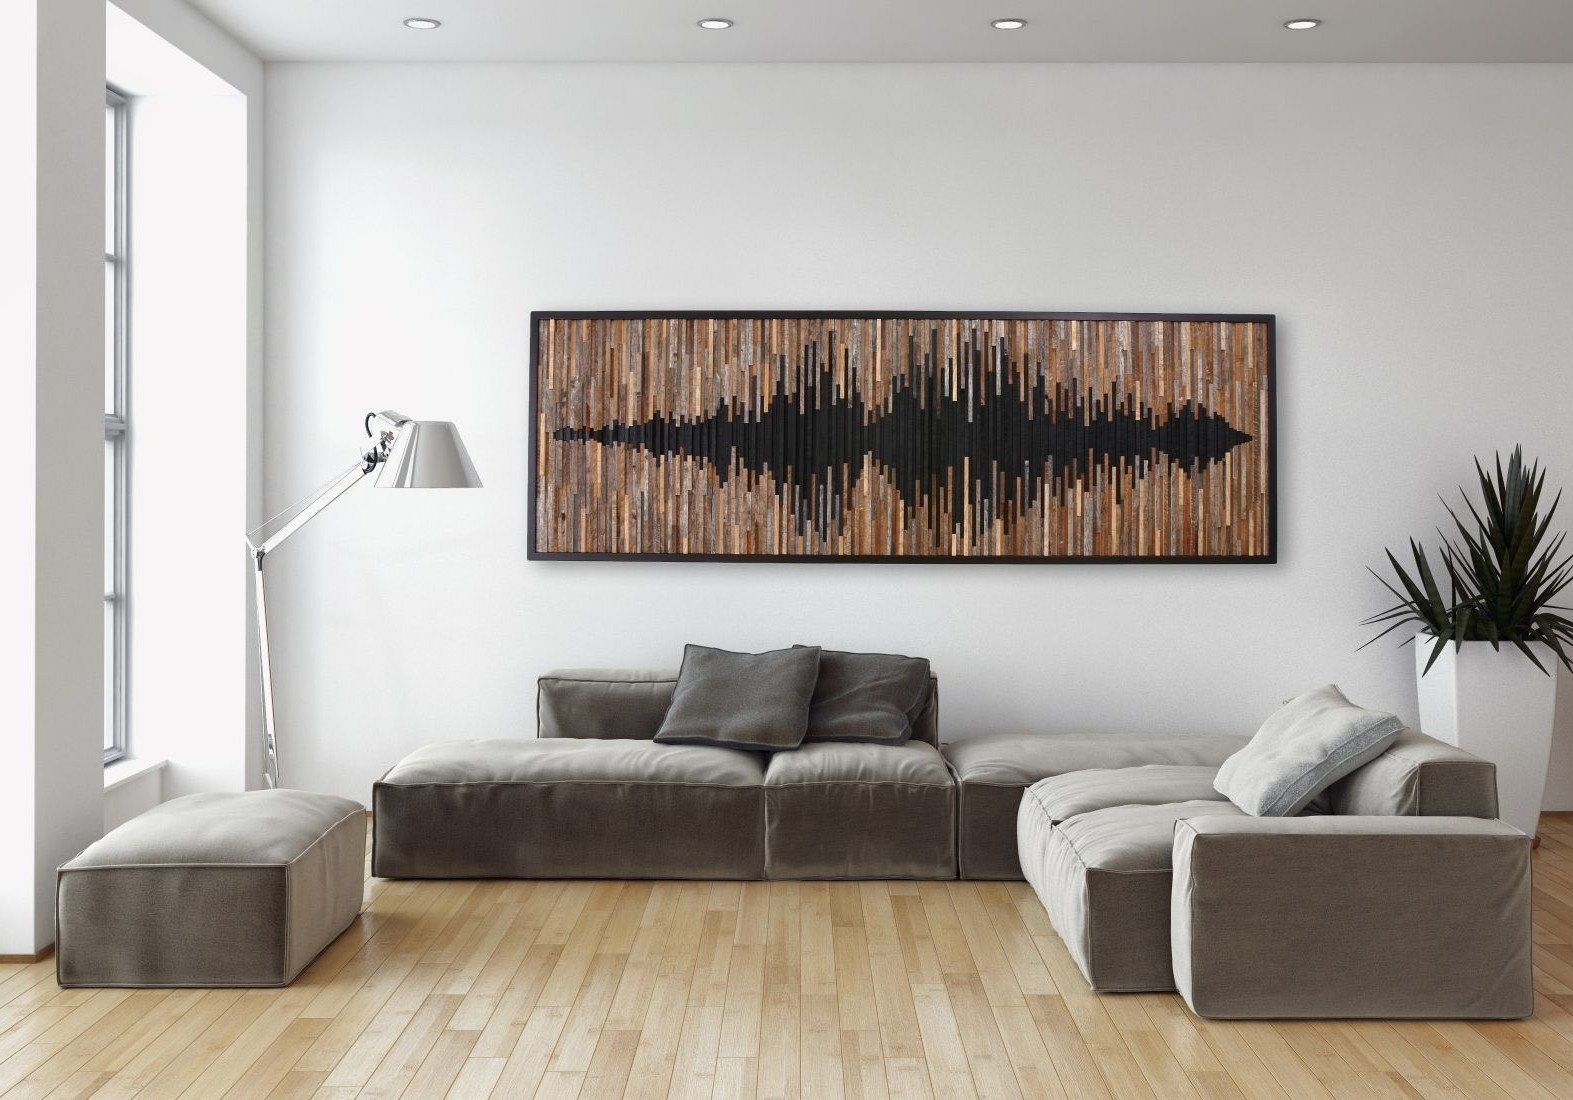 Cool Wall Decor for Guys Elegant 15 Ideas Of Cool Wall Art for Guys